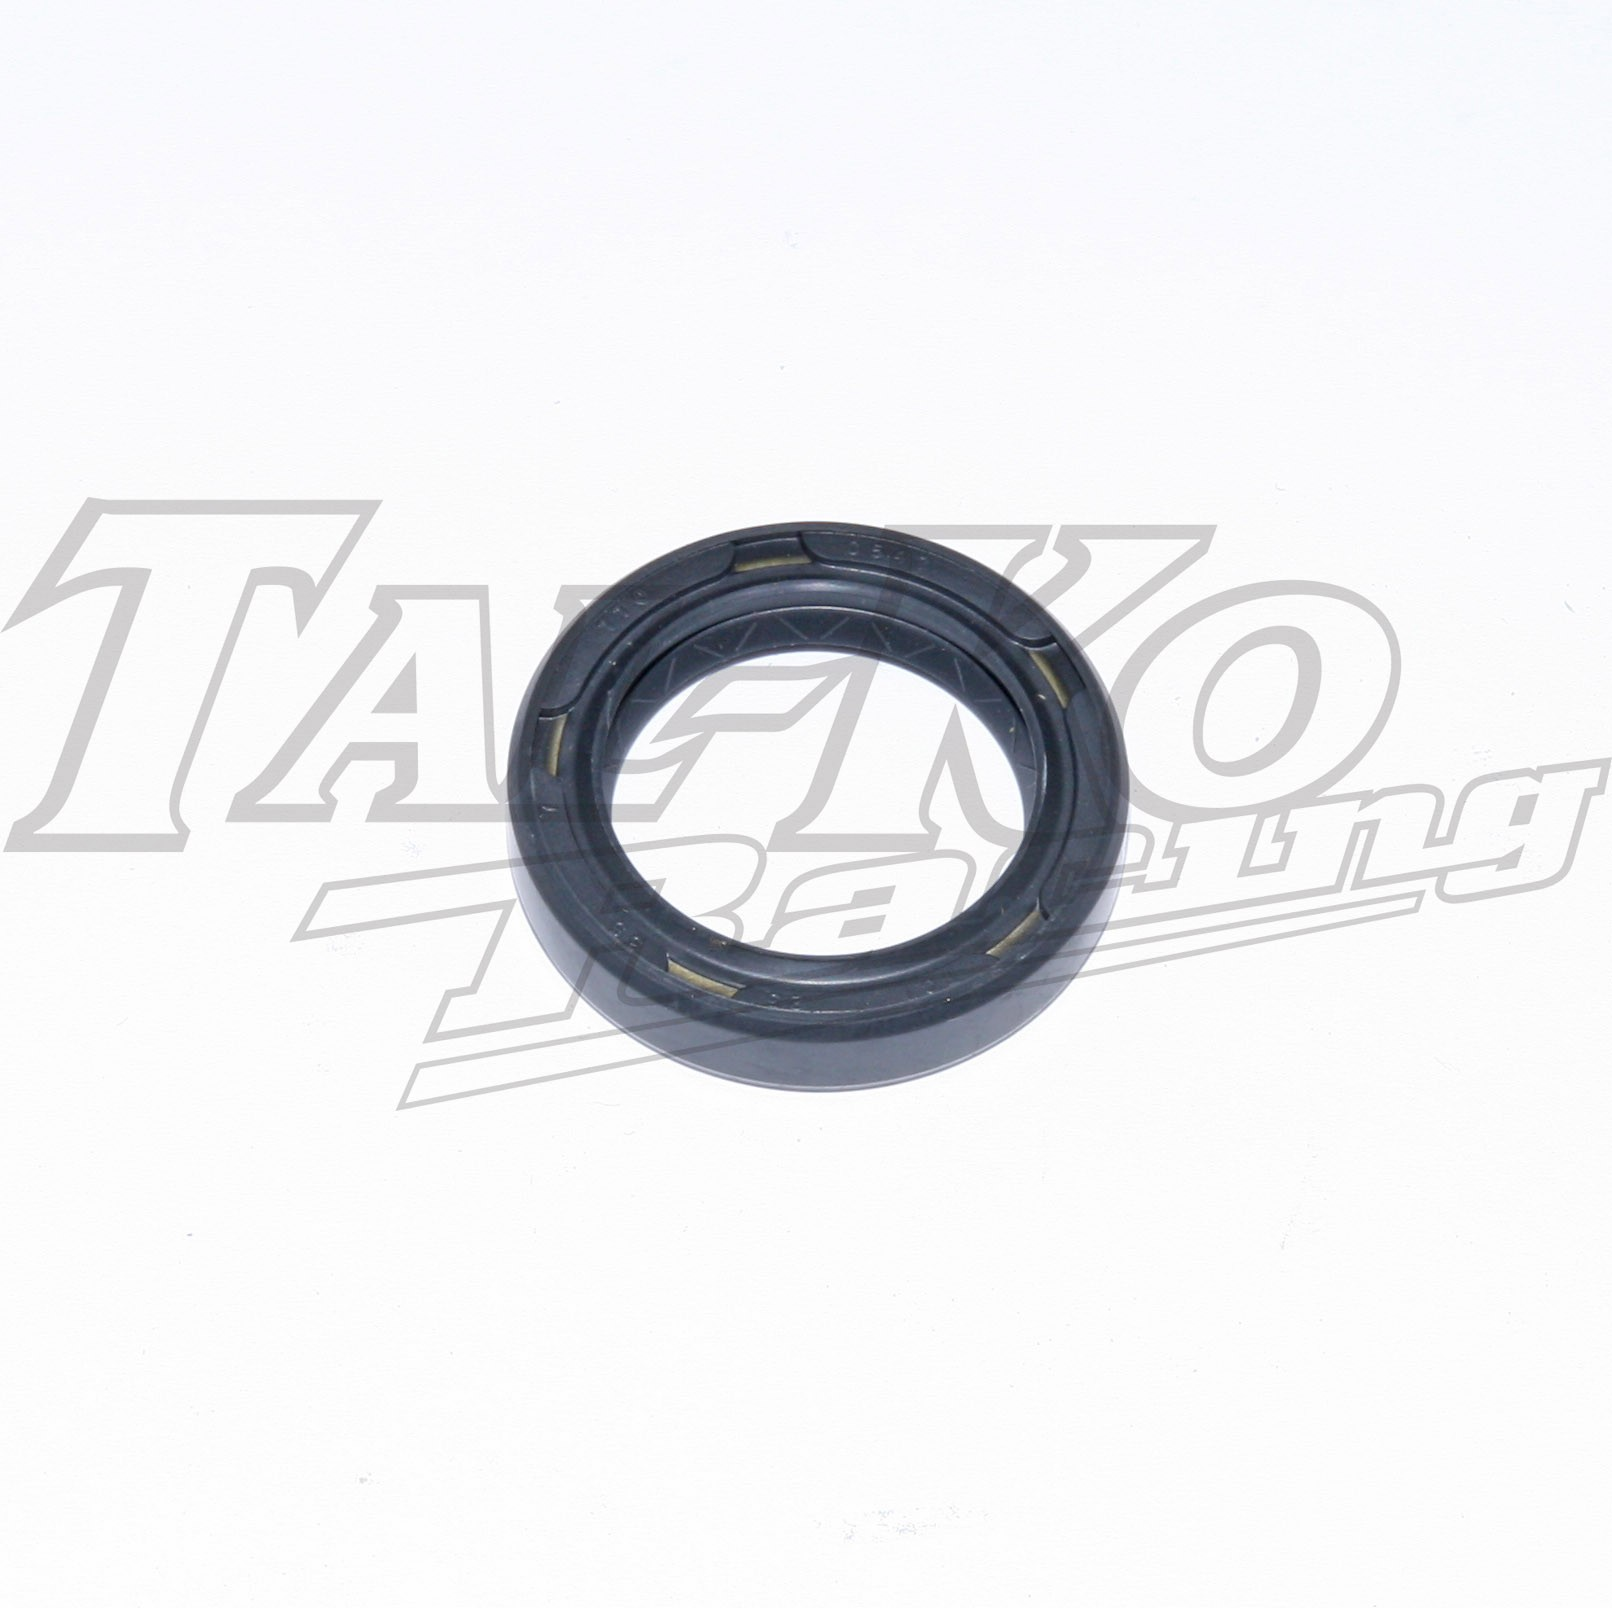 OIL SEAL ROLF 25 x 35 x 7